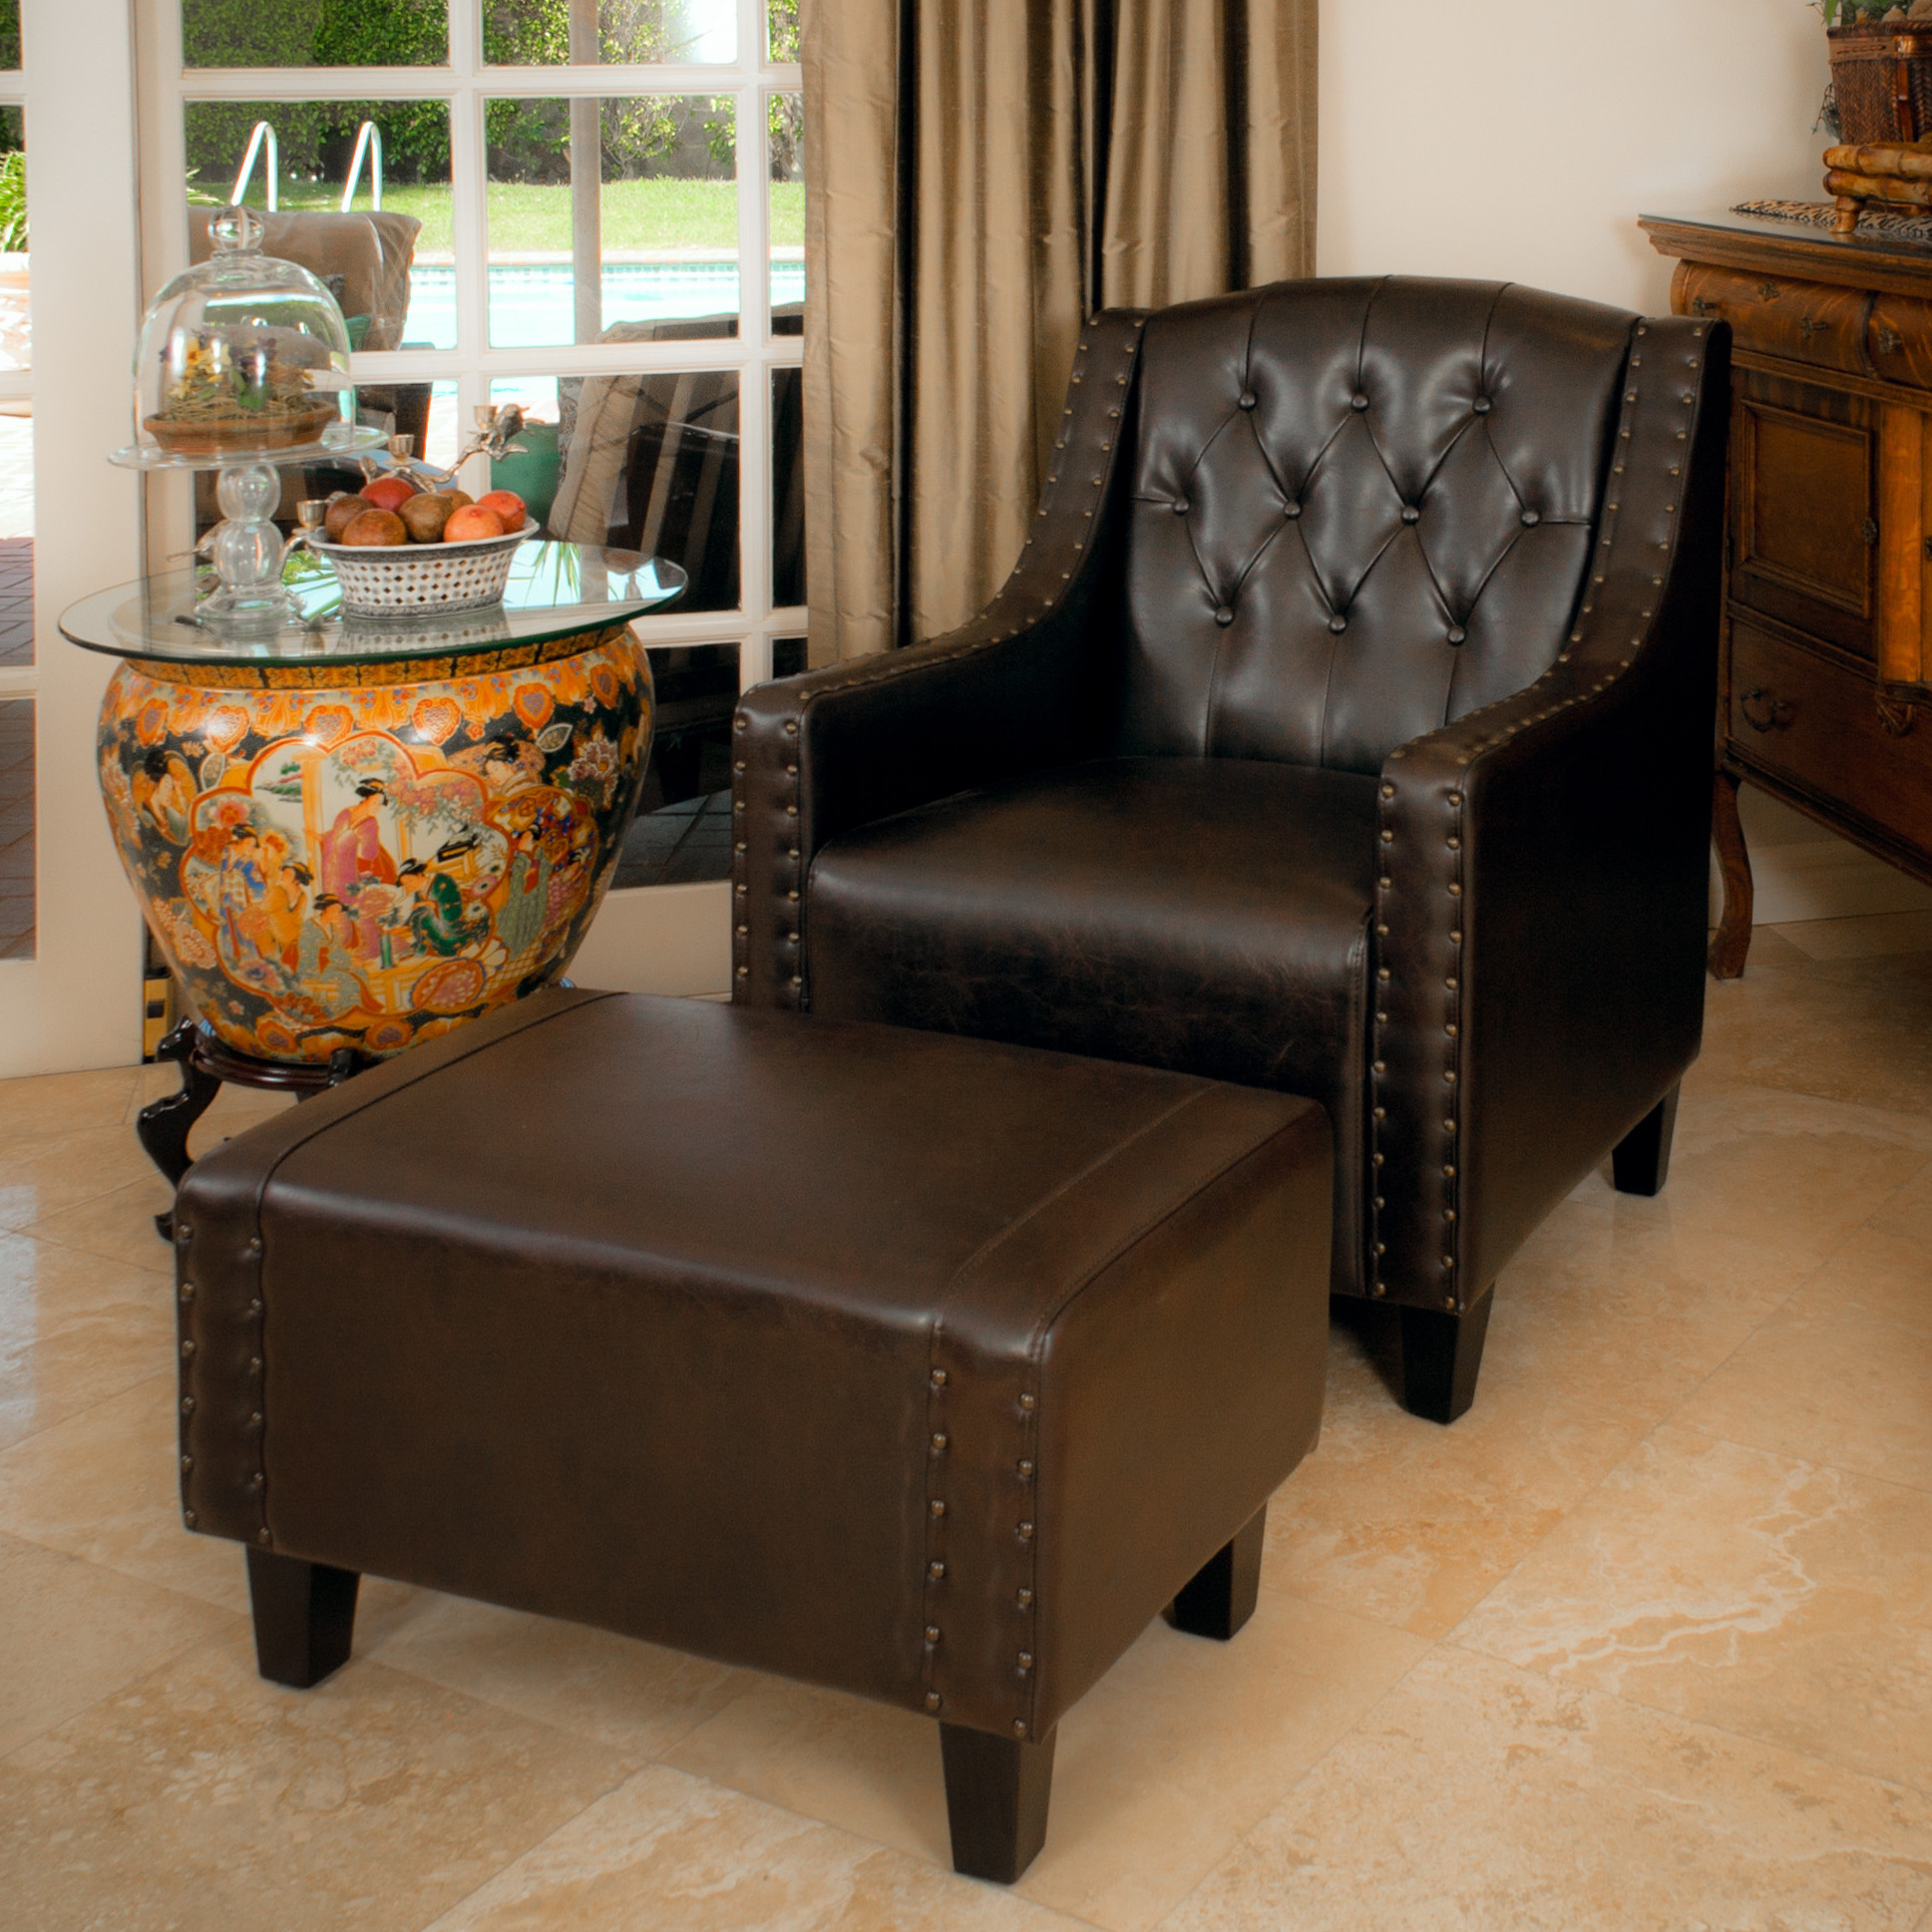 Ethan Allen Chairs | Comfy Armchair | Leather Chair And Ottoman